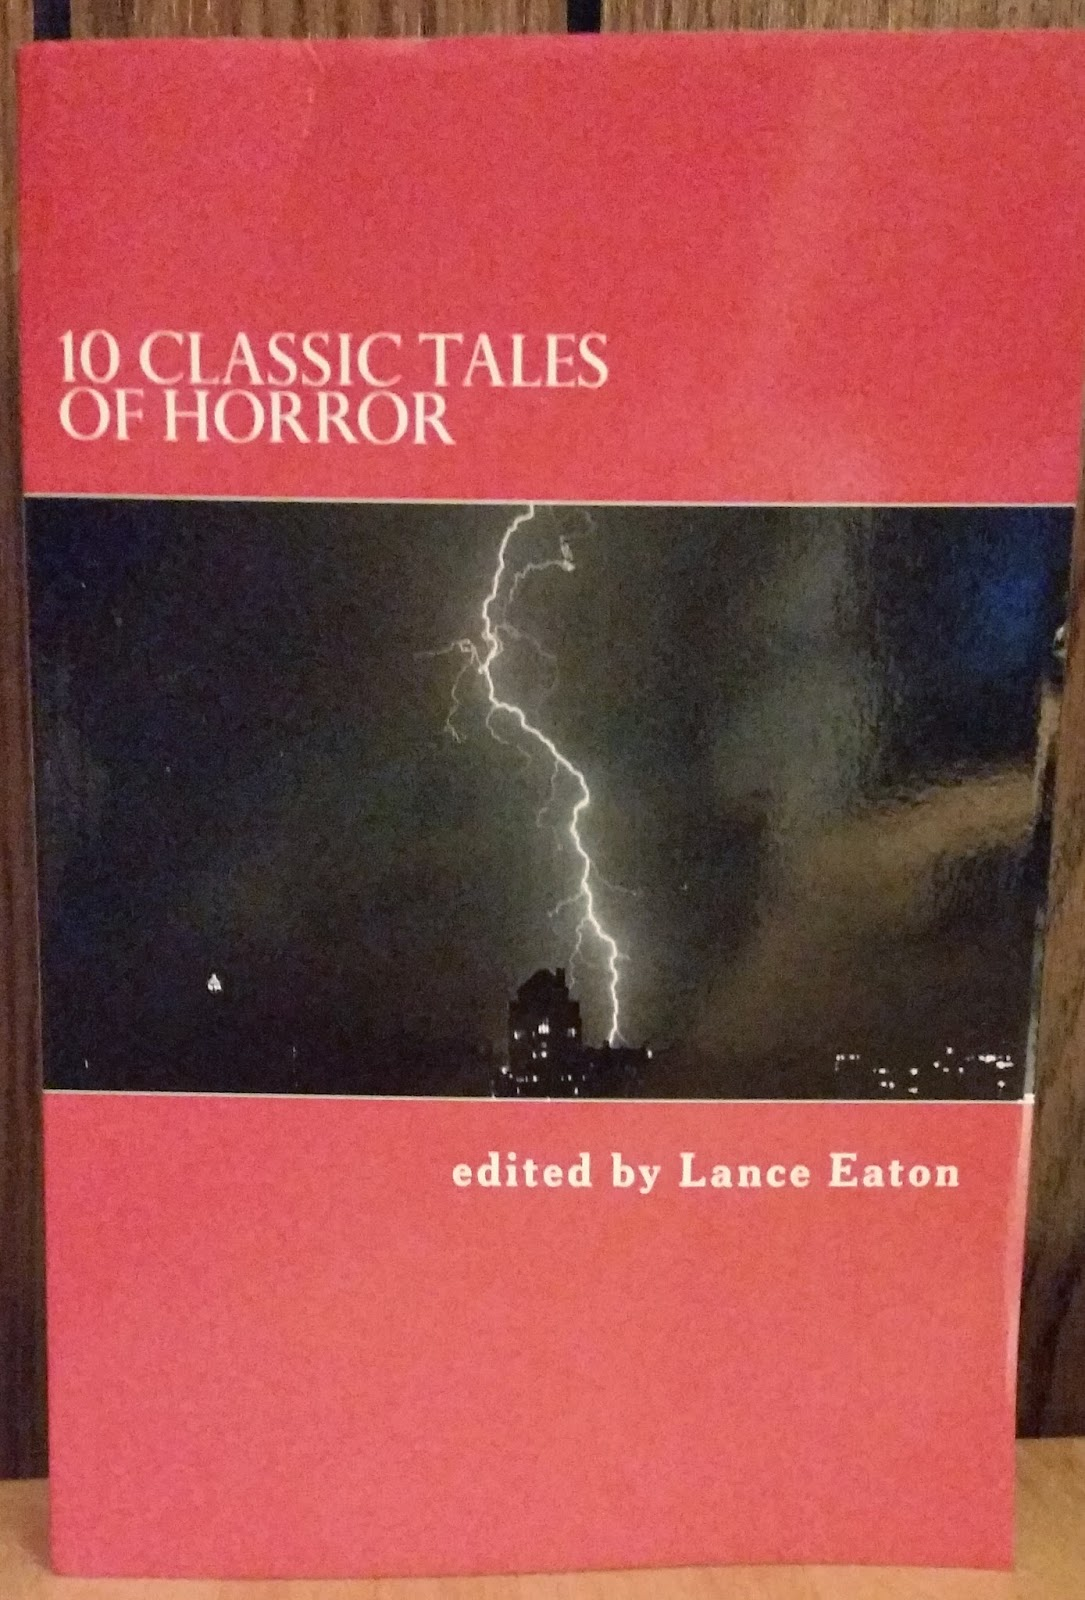 Book cover to 10 Classic Tales of Horror, edited by Lance Eaton